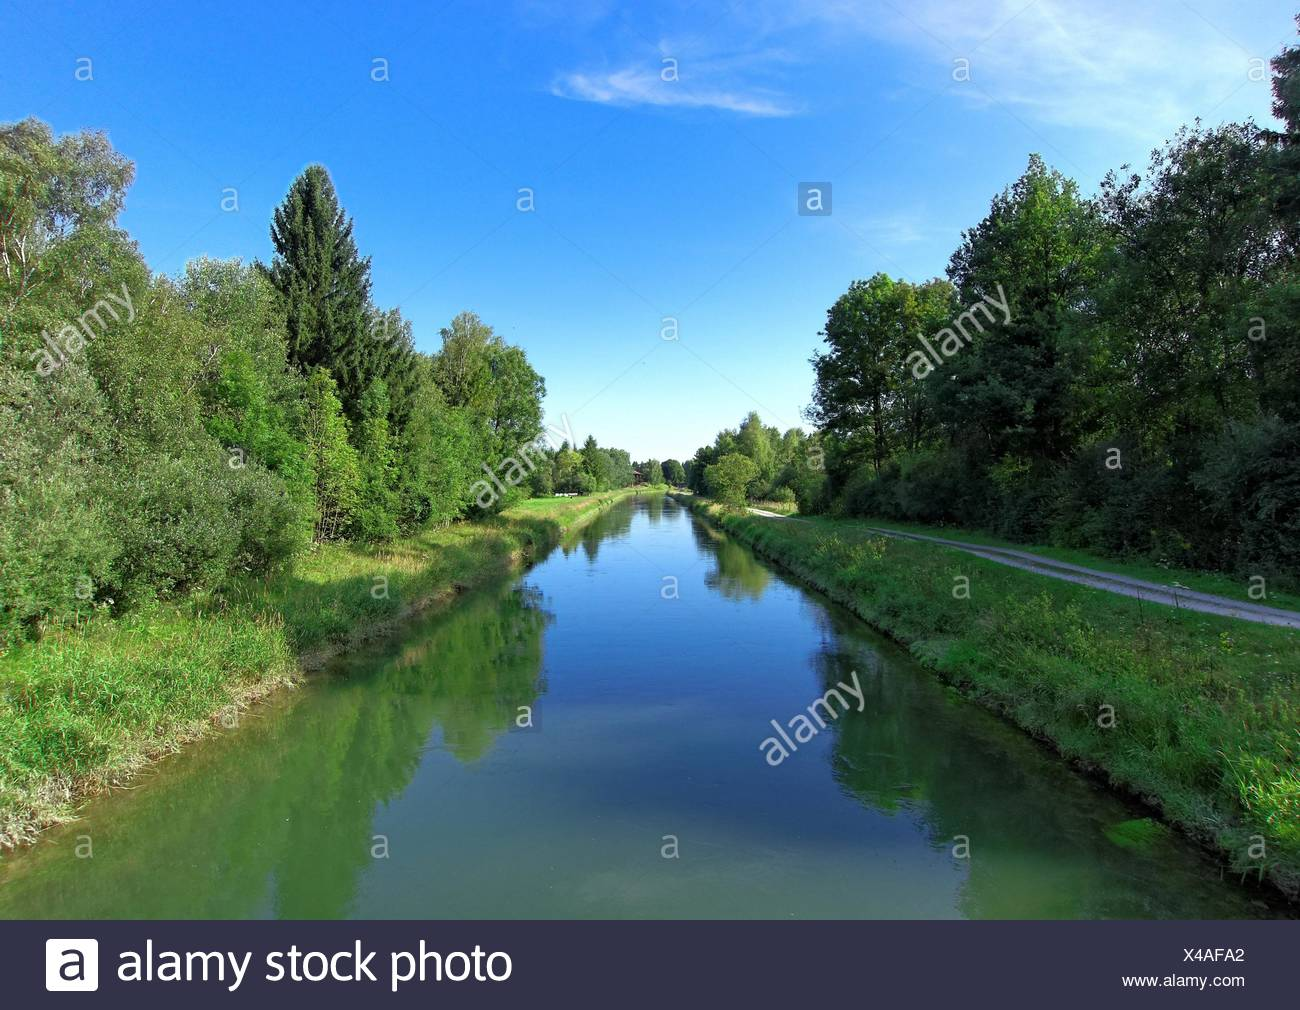 geography / travel, Germany, Bavaria, Baierlach, Loisach Channel, Additional-Rights-Clearance-Info-Not-Available - Stock Image